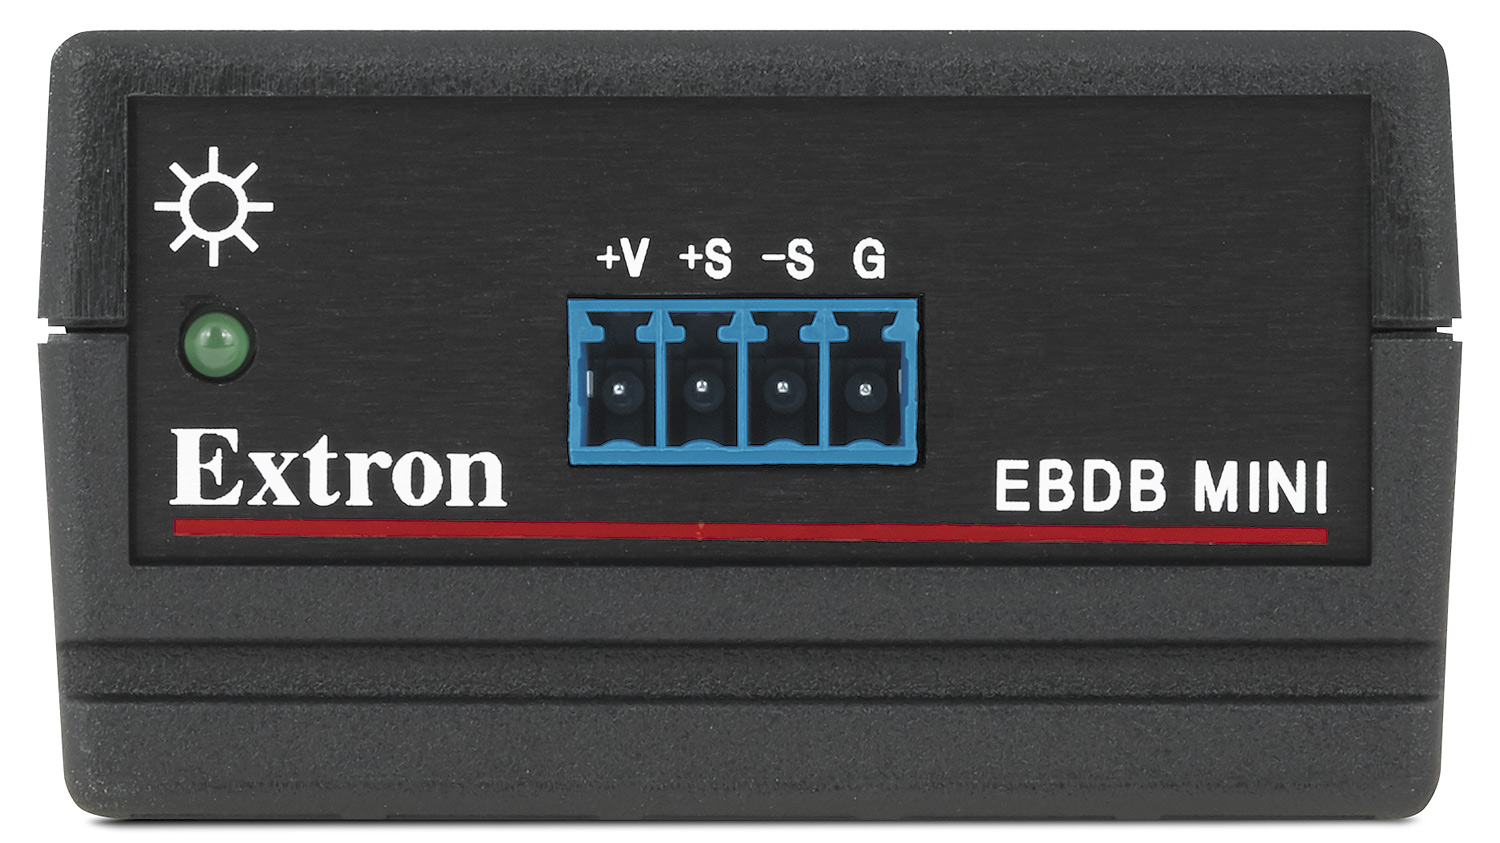 The Extron EBDB MINI